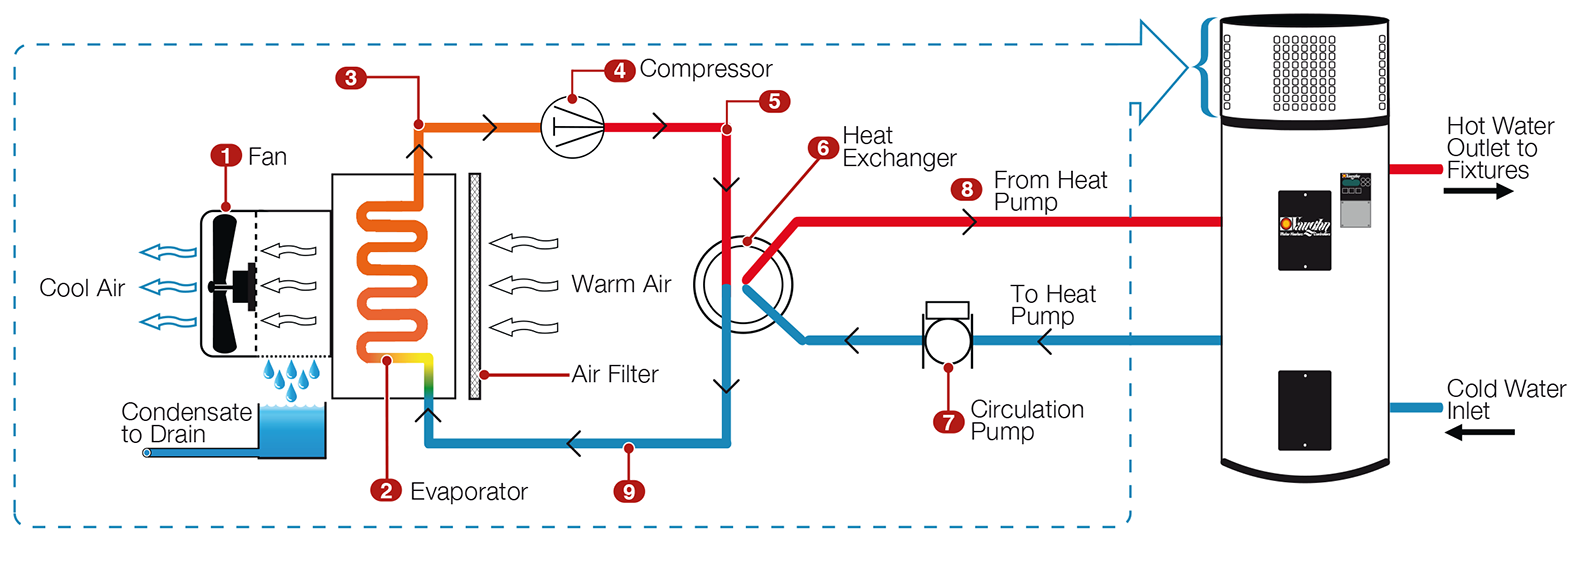 Hot Water Boiler Wiring Simple Diagram Of Boilers Home Heating Diagrams Schematic Heater For 220